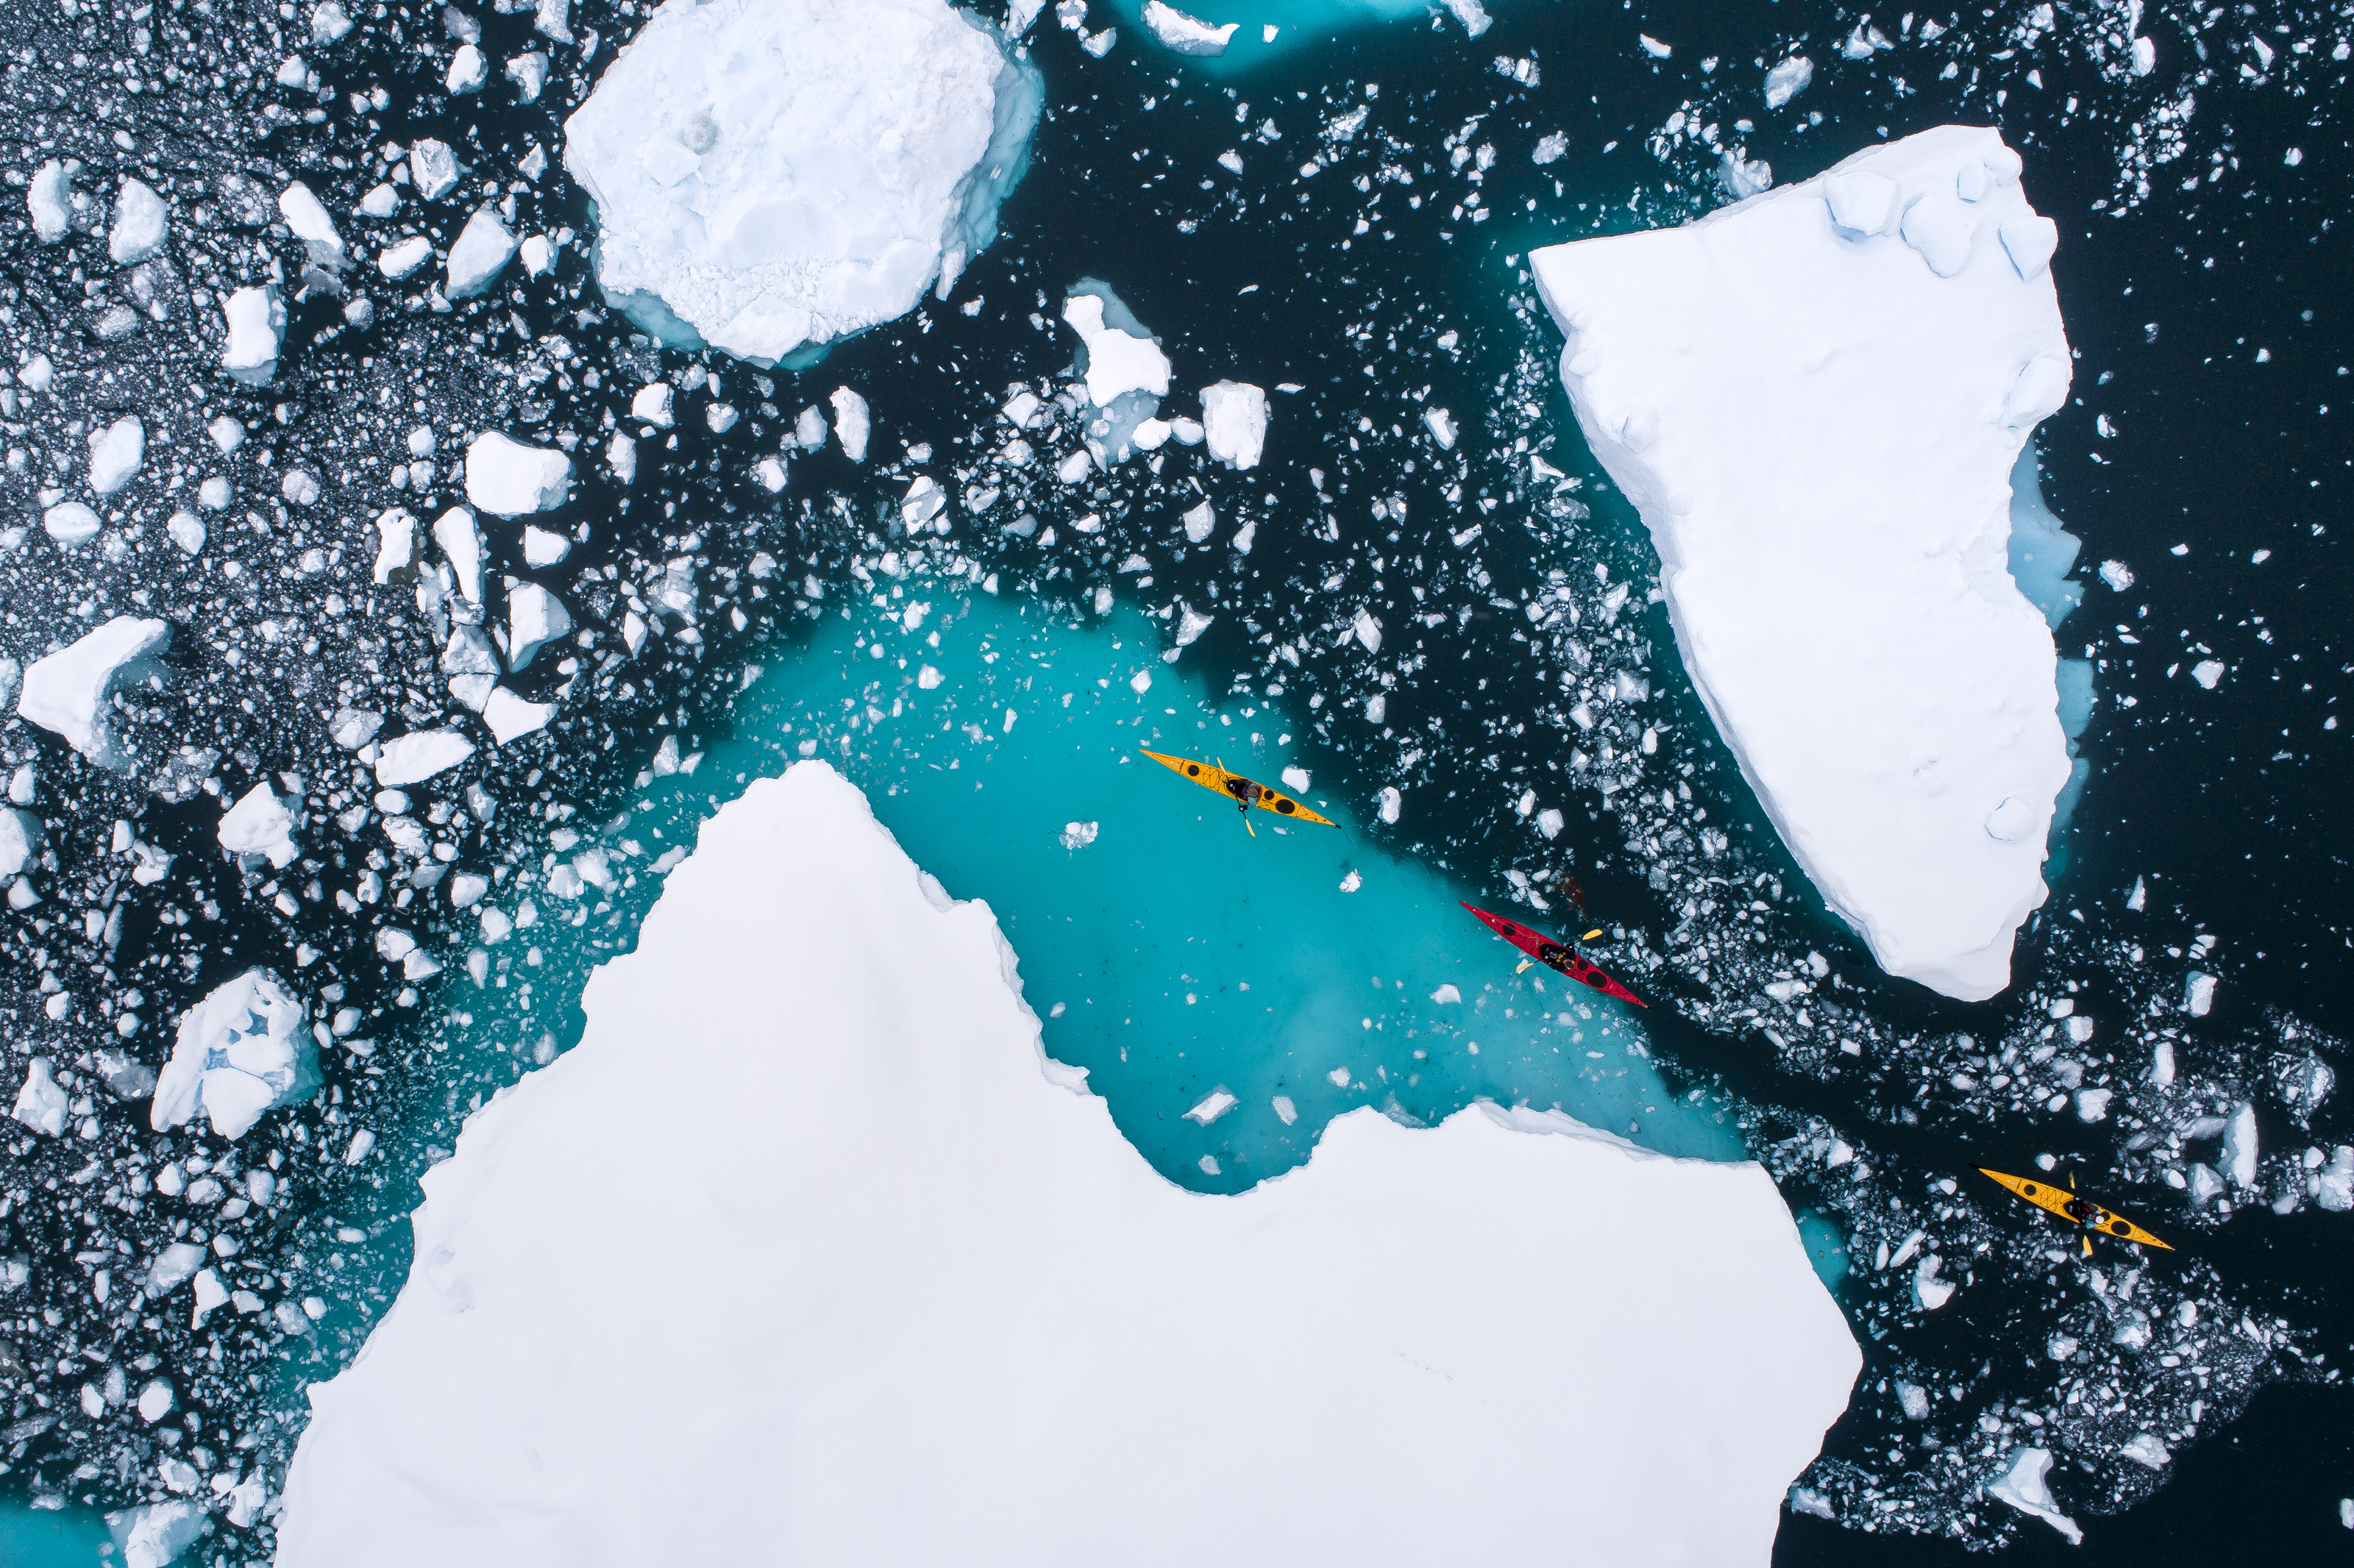 Florian Ledoux S Arctic Photos Illustrate The Effects Of Climate Change Digital Photography Review